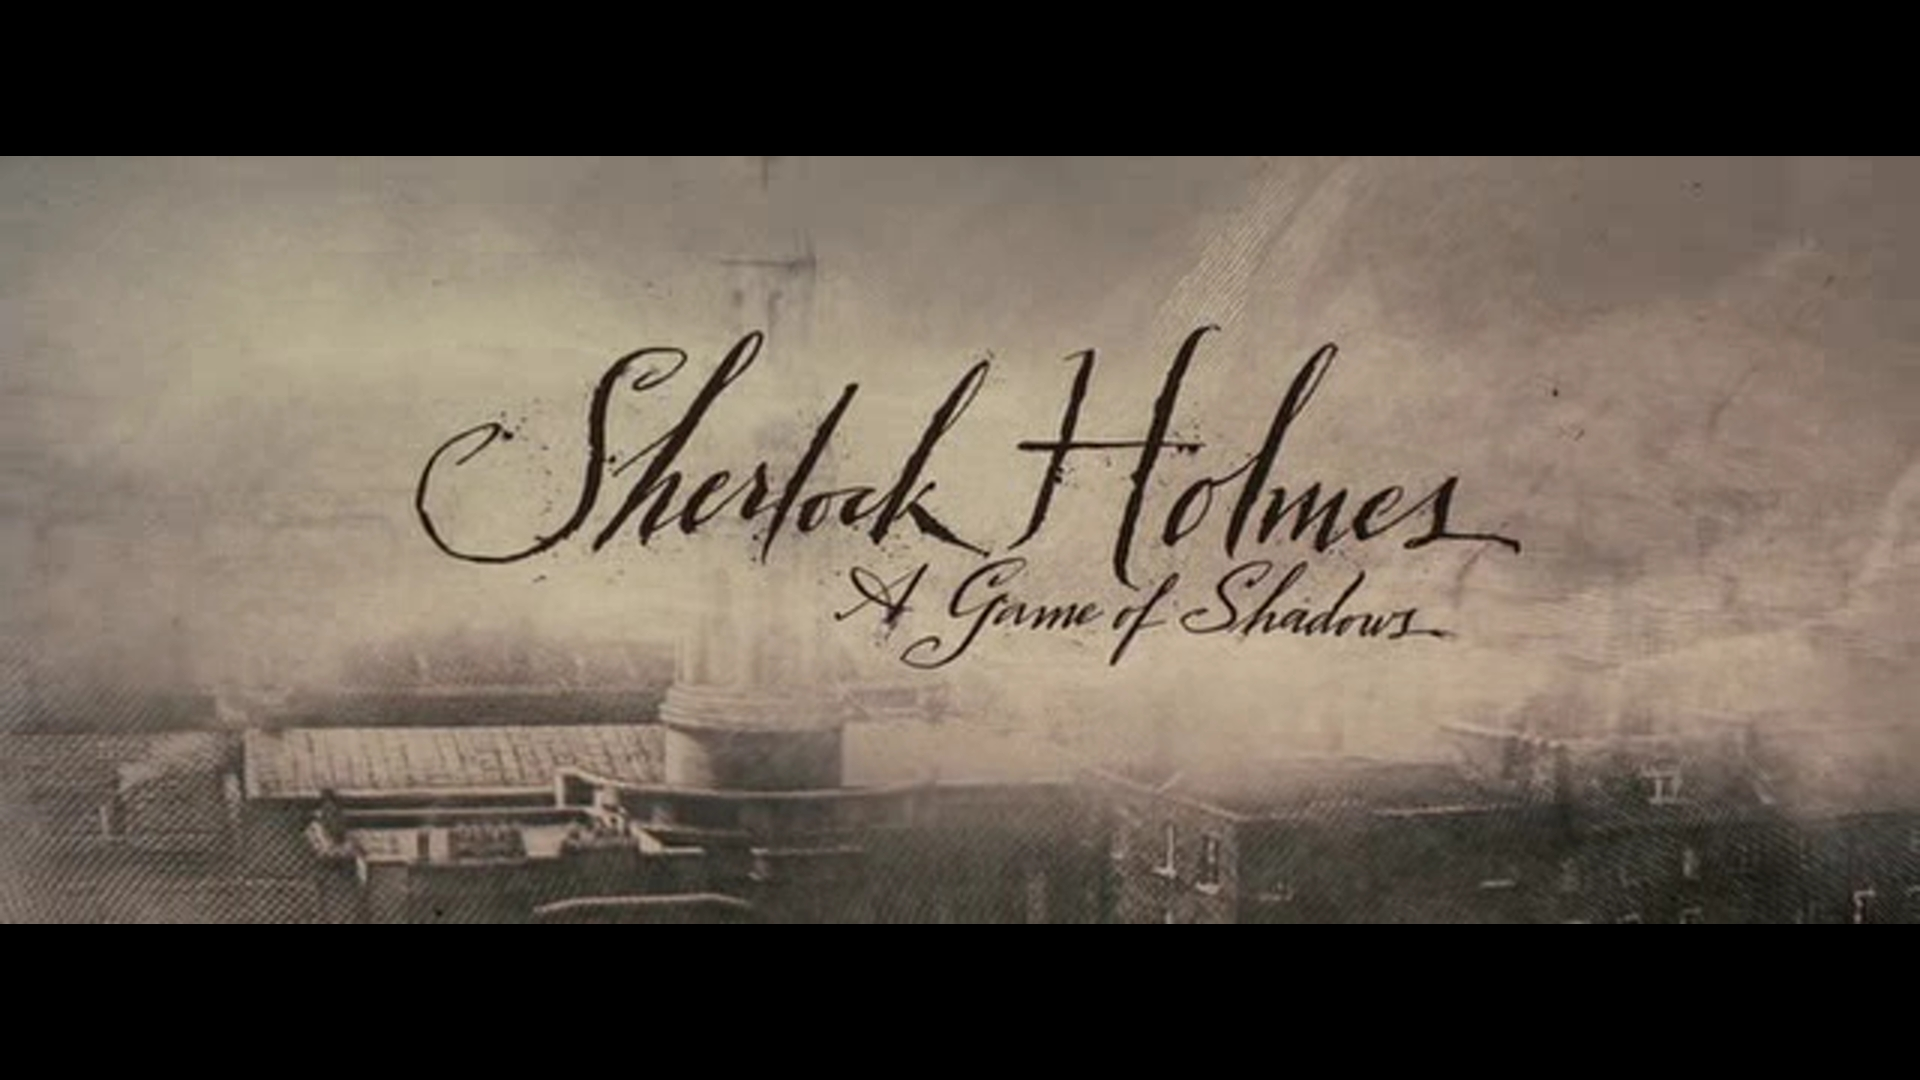 Sherlock Holmes 2009 Film Images My HD Wallpaper And Background Photos